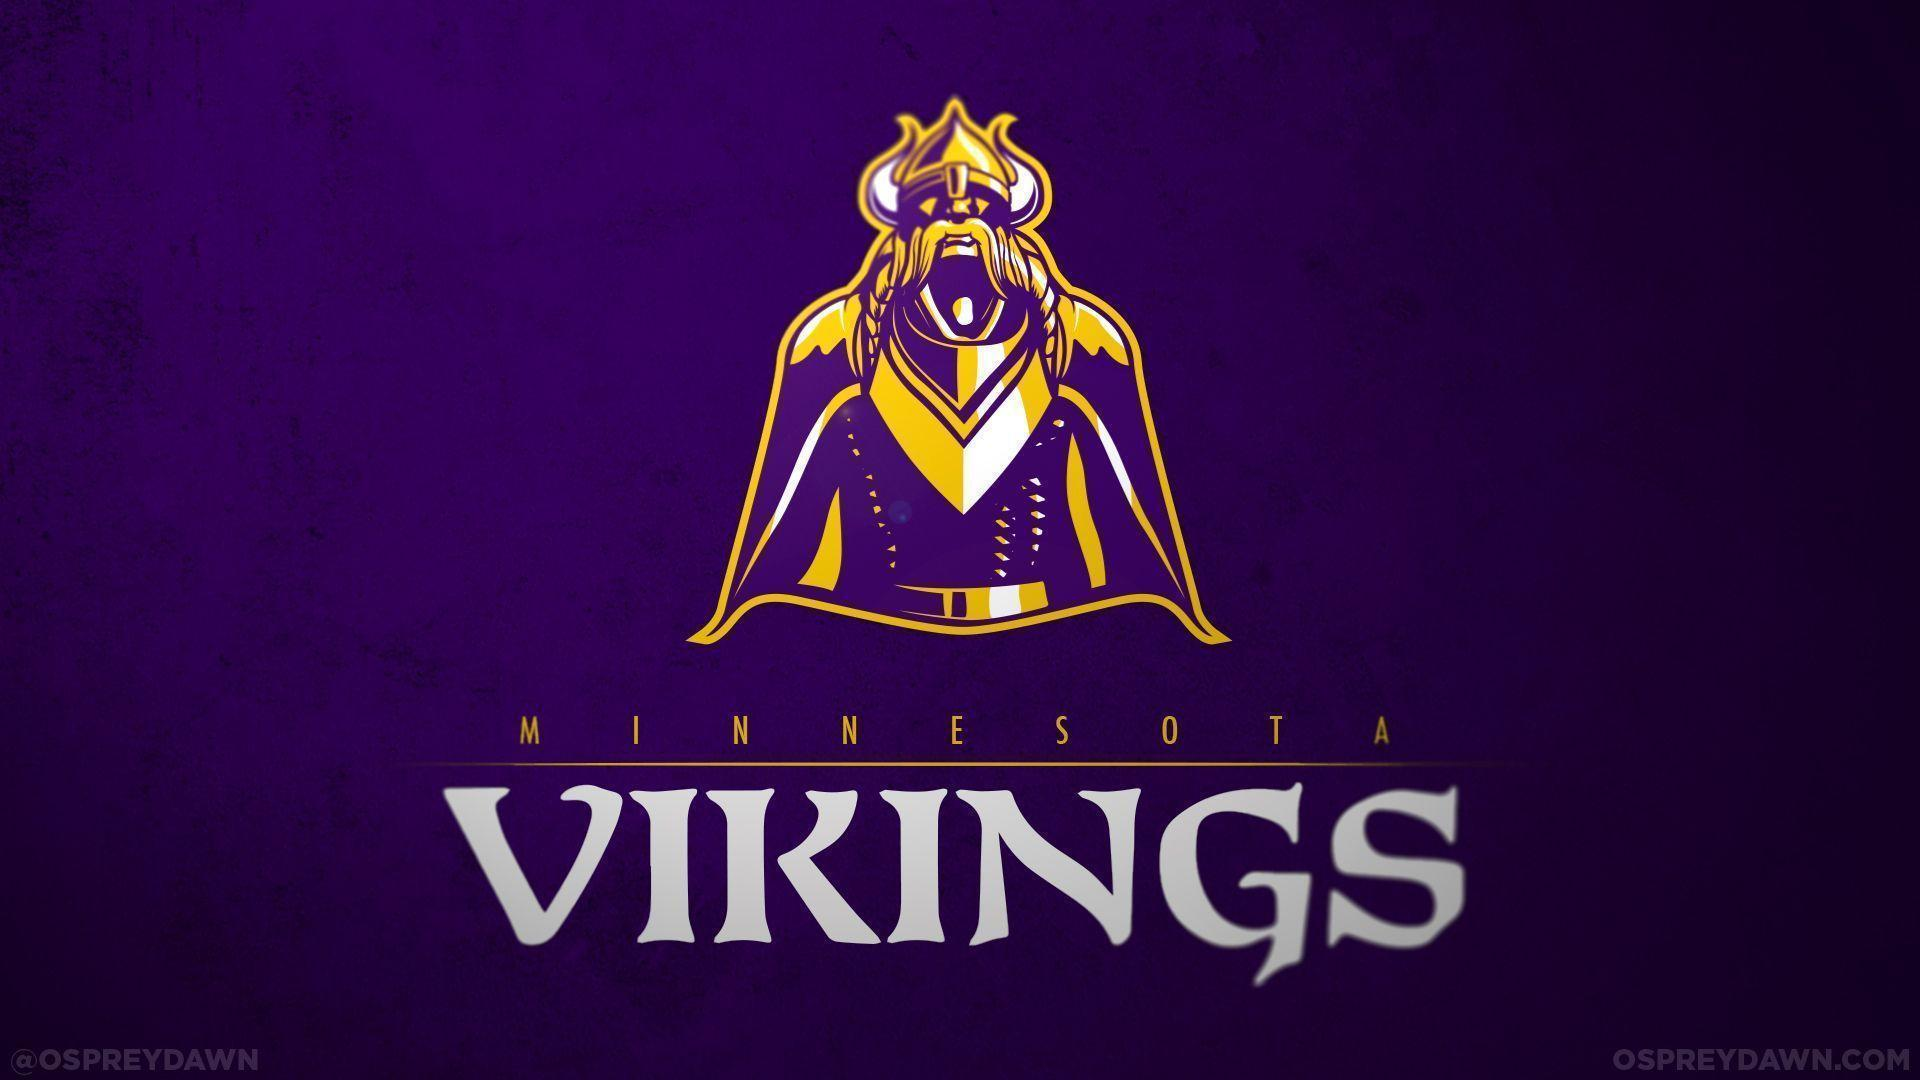 Minnesota Vikings Wallpapers and Background